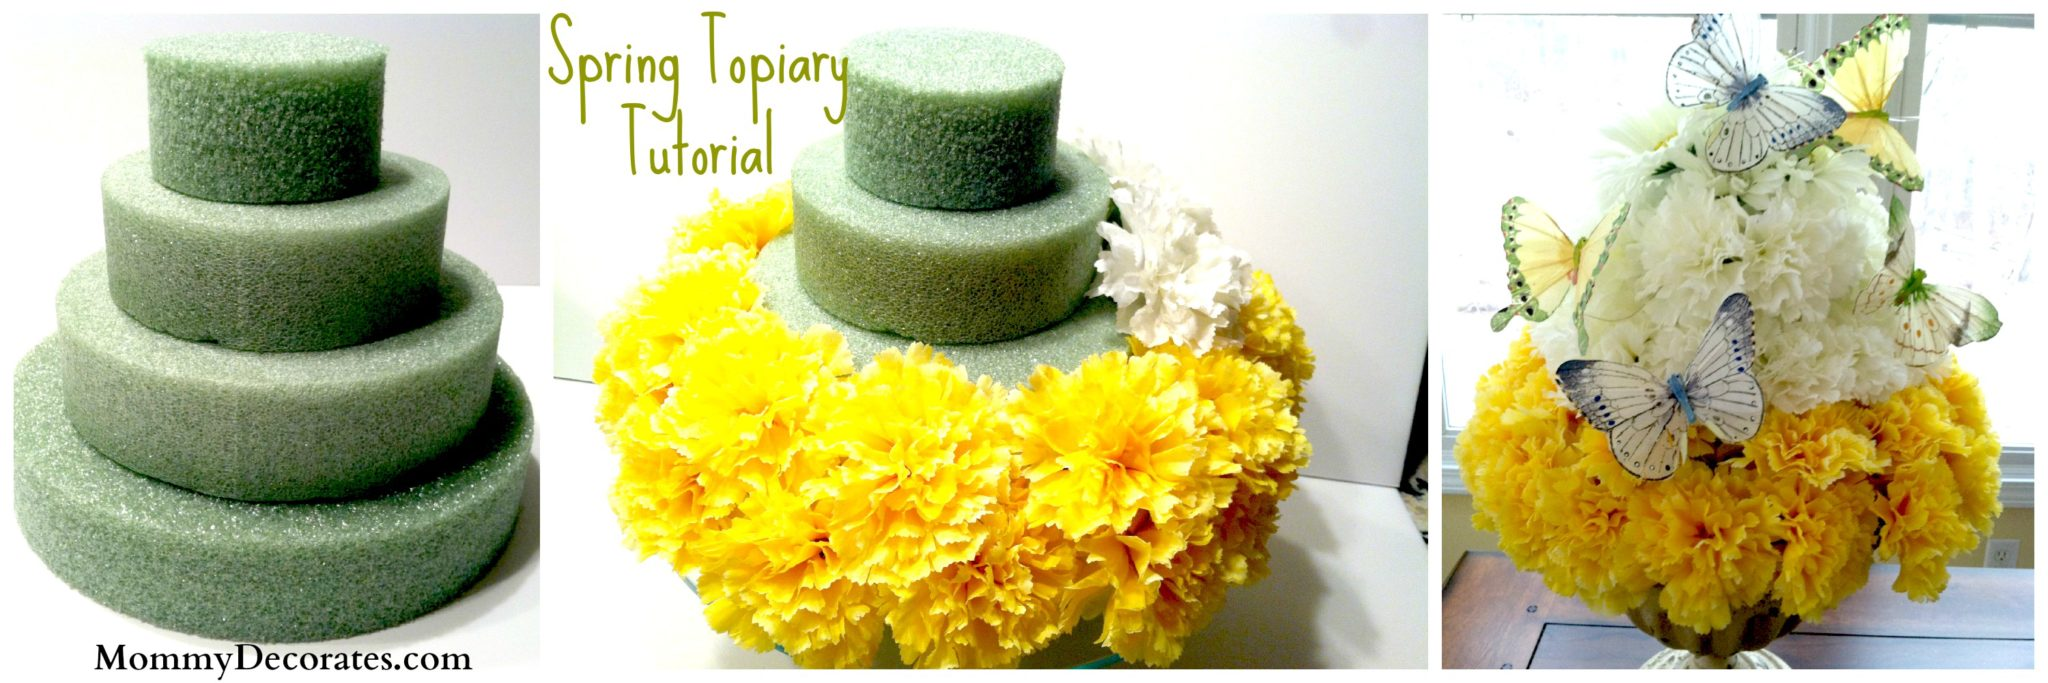 Spring Topiary – How to make one 3 Pictures